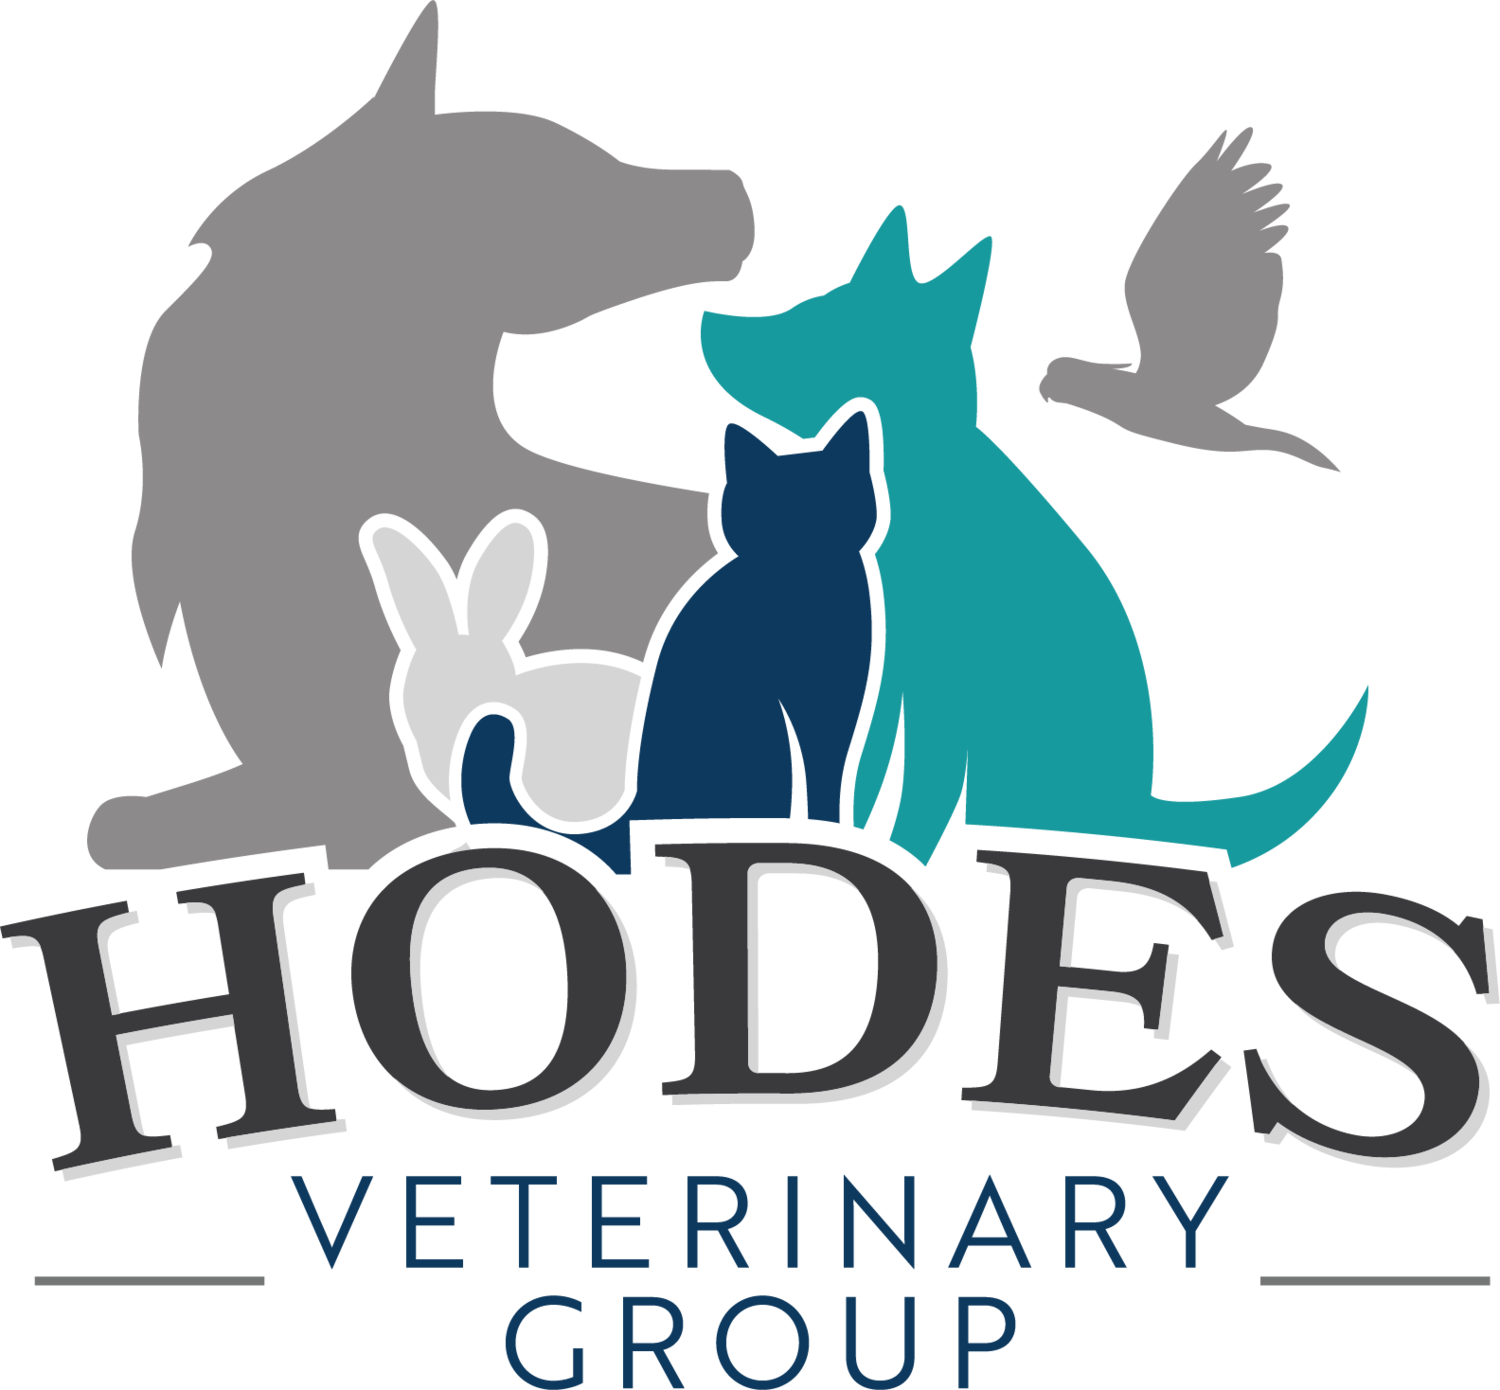 Hodes Veterinary Group